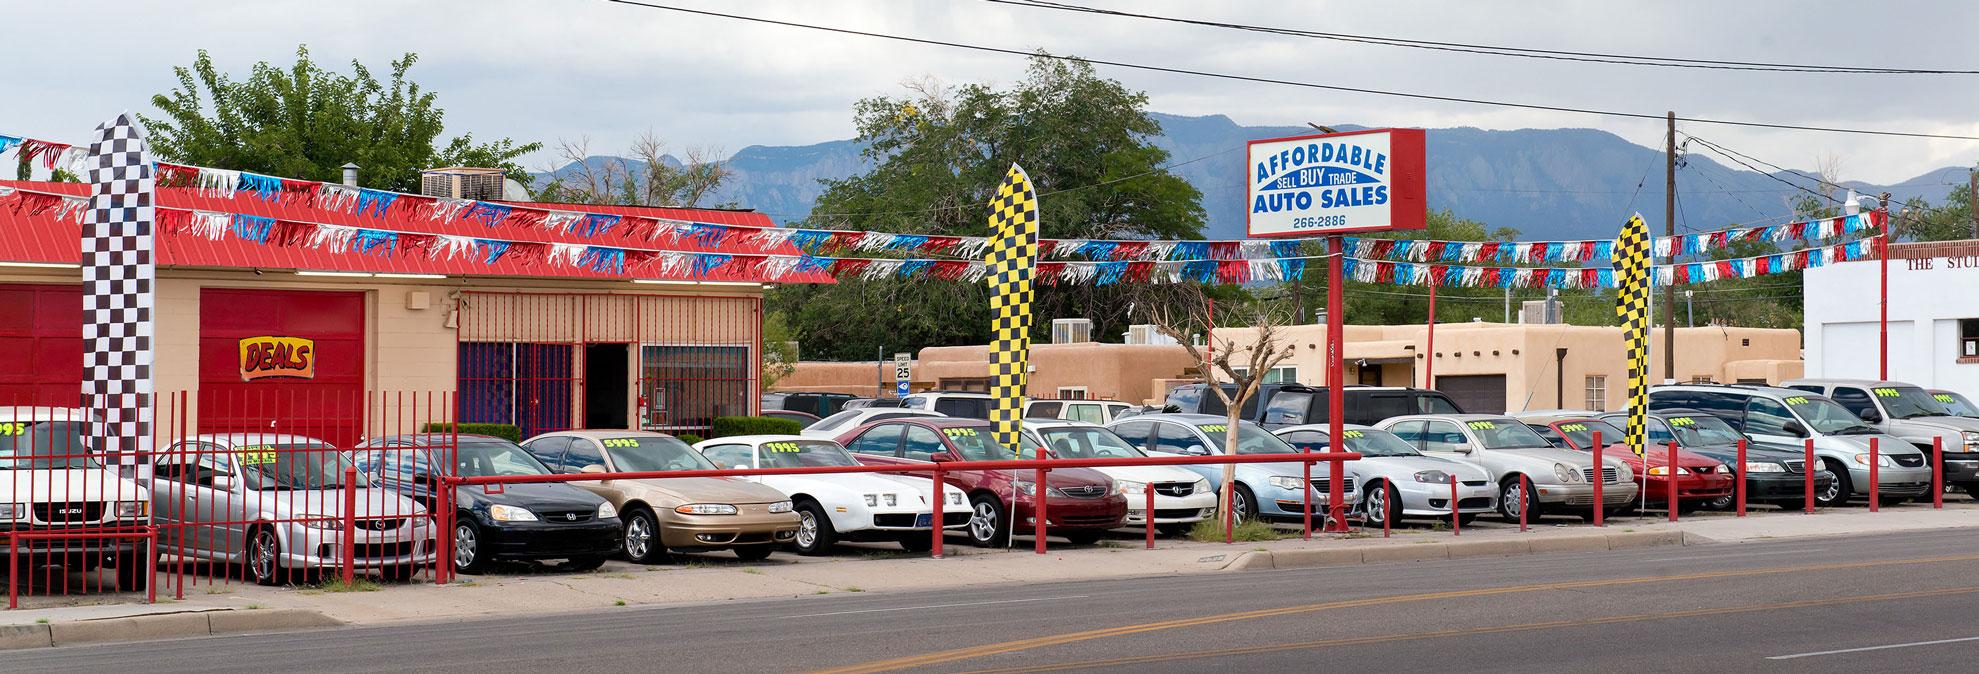 Used Cars For Sale By Dealer: Protect Yourself From Used-Car Sales Tactics